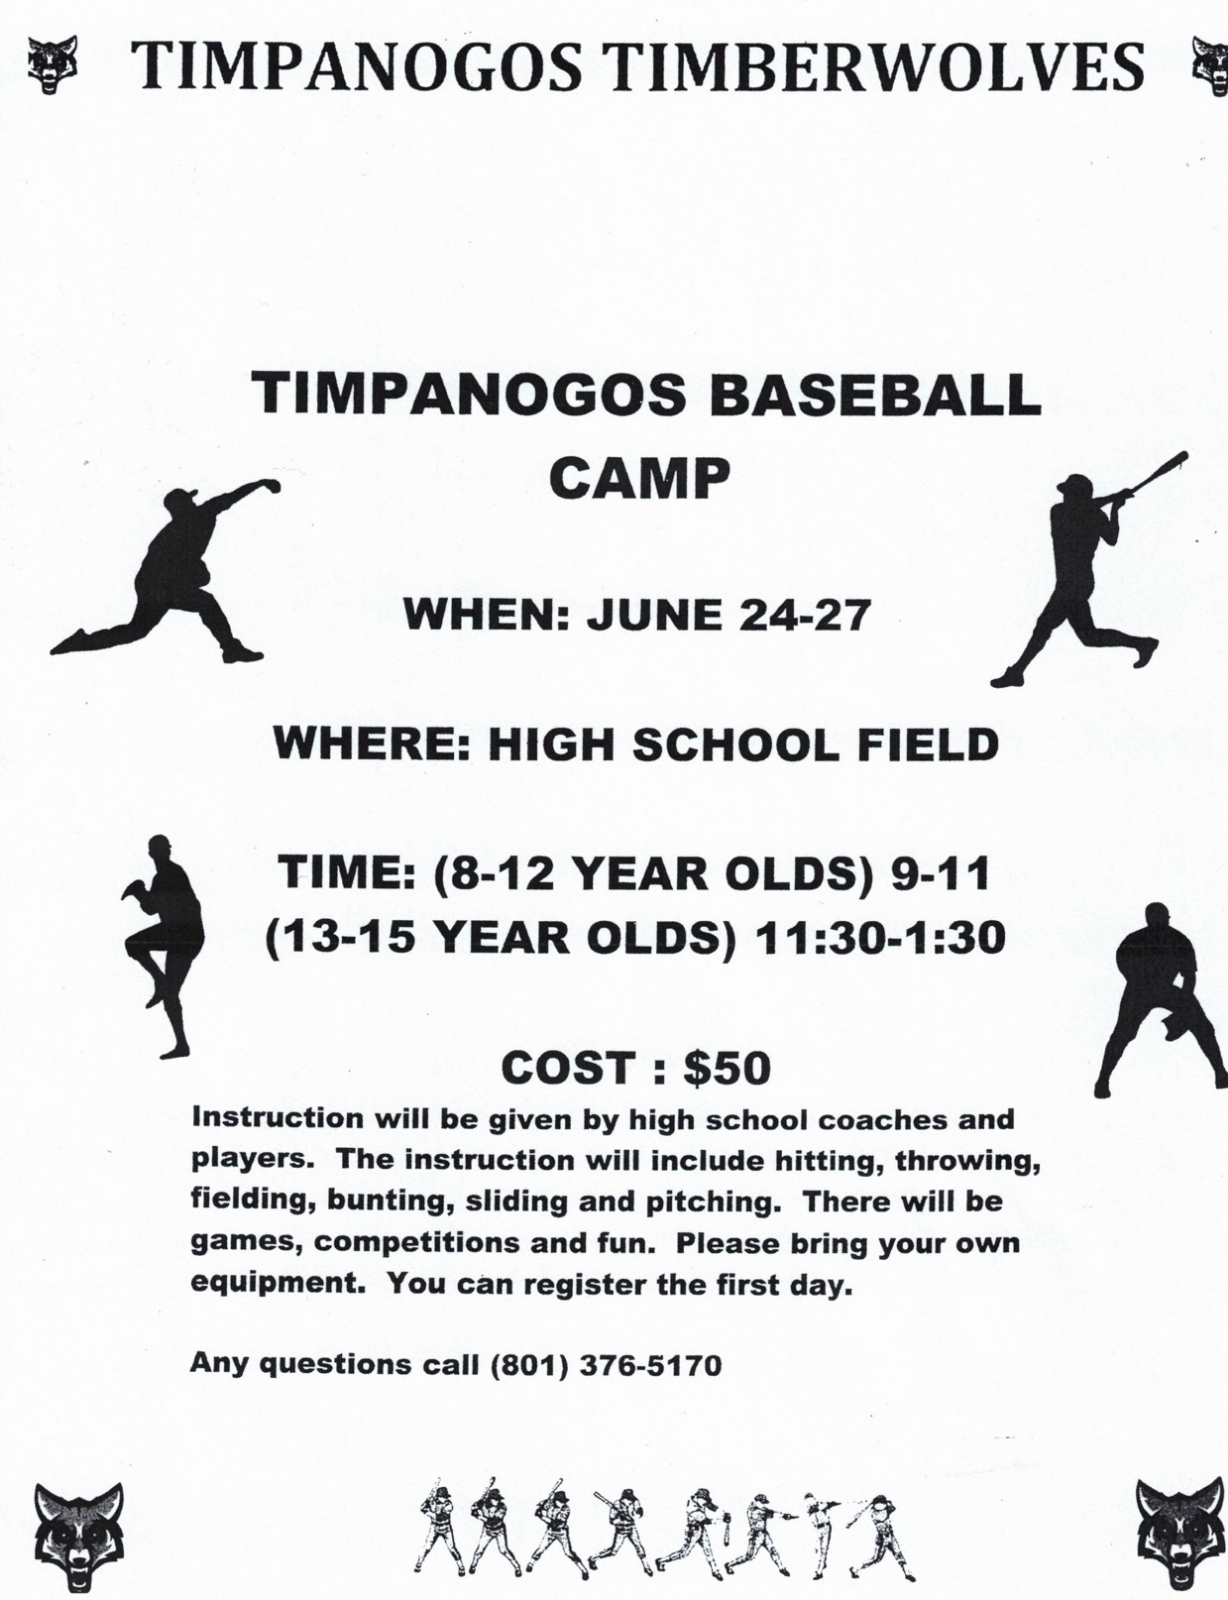 Timpanogos Baseball Camp